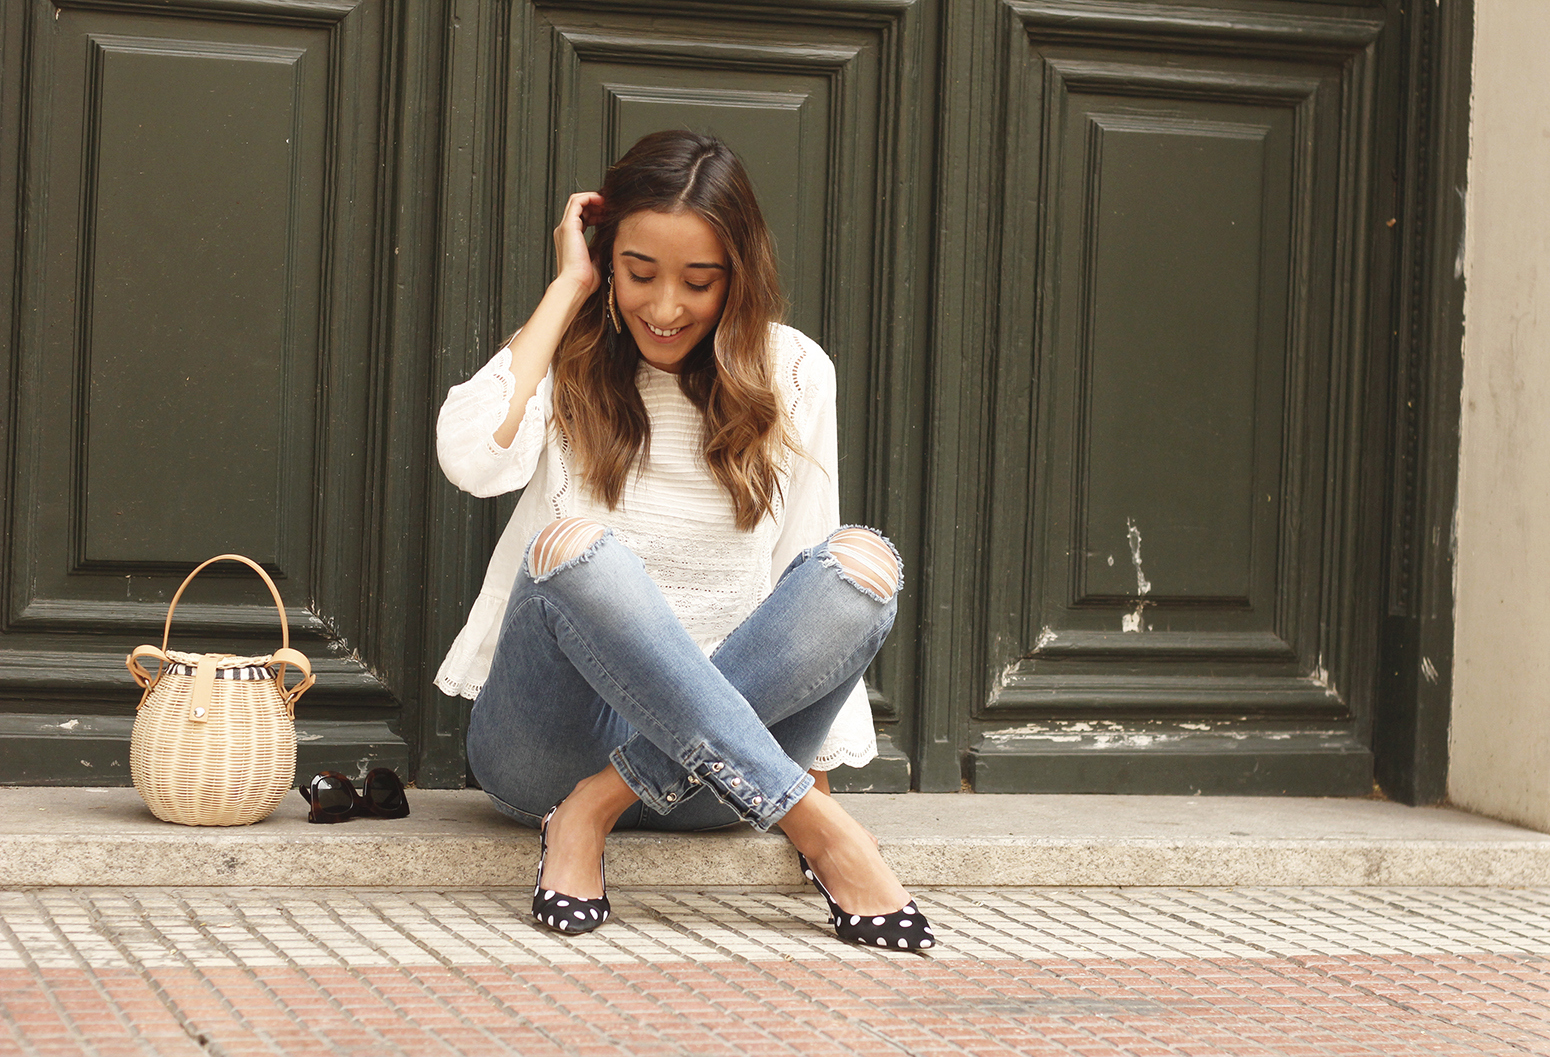 polka dot kitten heels white blouse ripped jeans outfit girl style fashion12